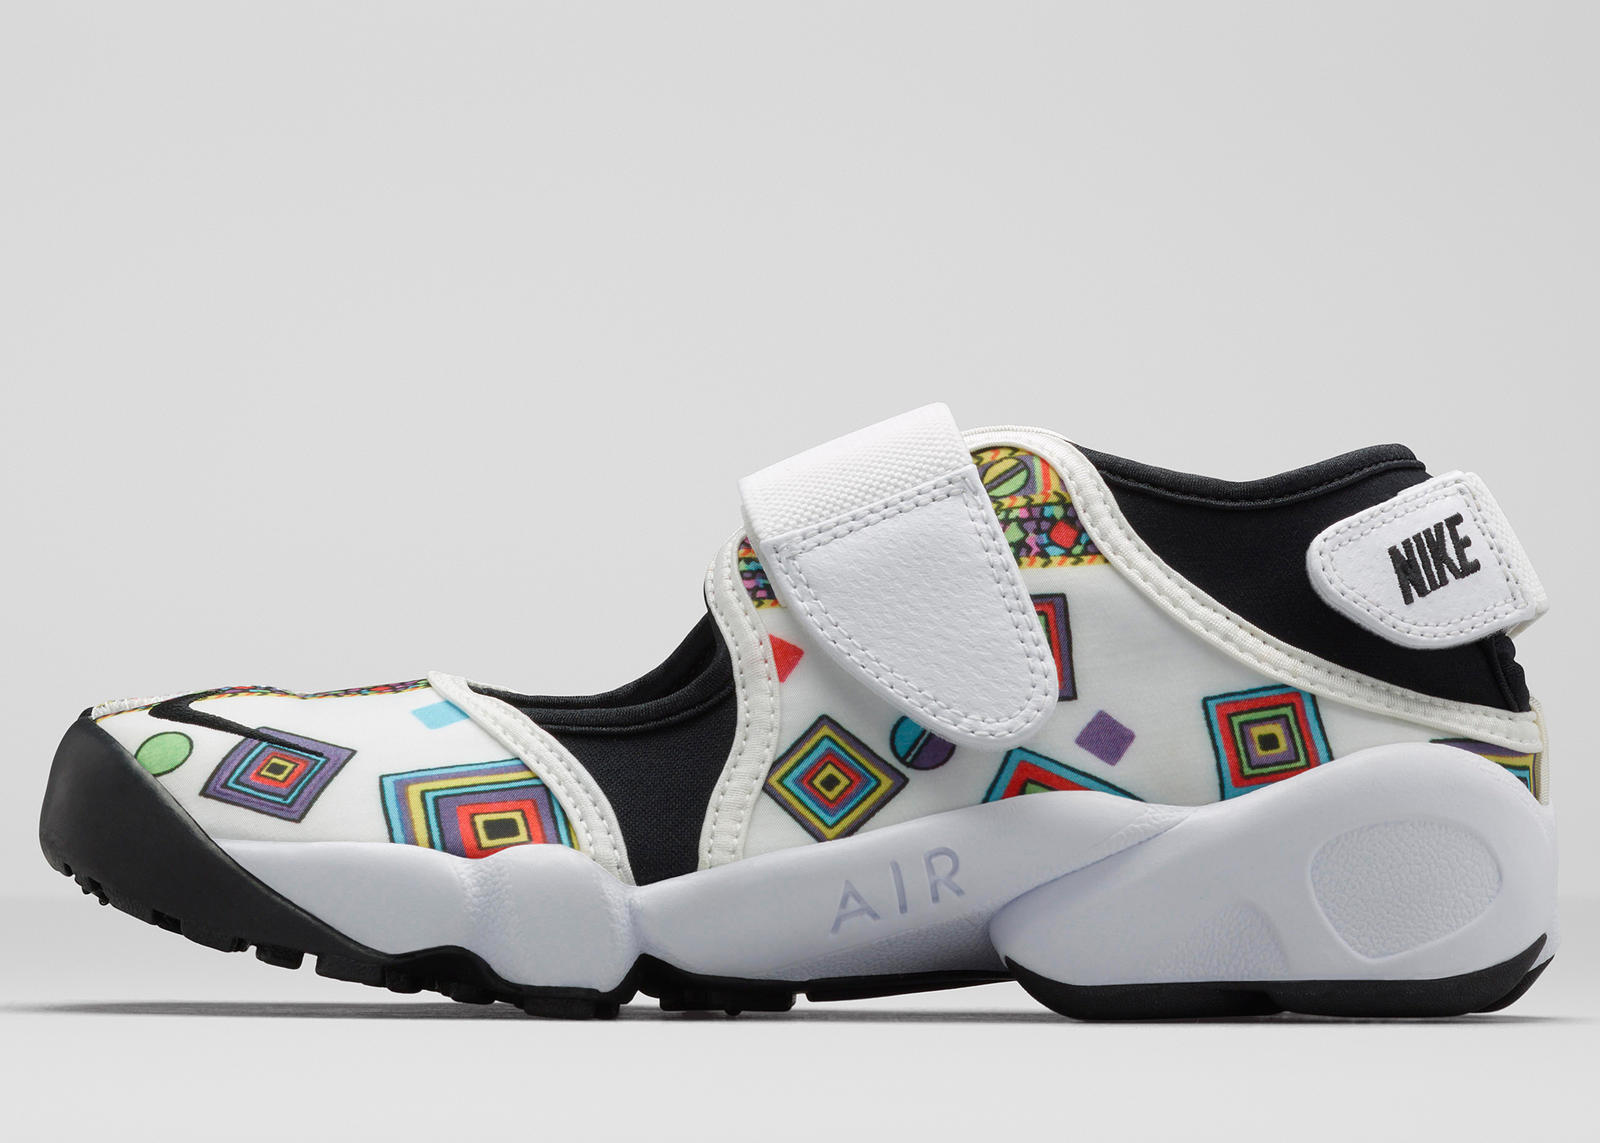 extraterrestre Hacia Humano  The Nike Air Rift Adds Edge To The Liberty Collection - Nike News